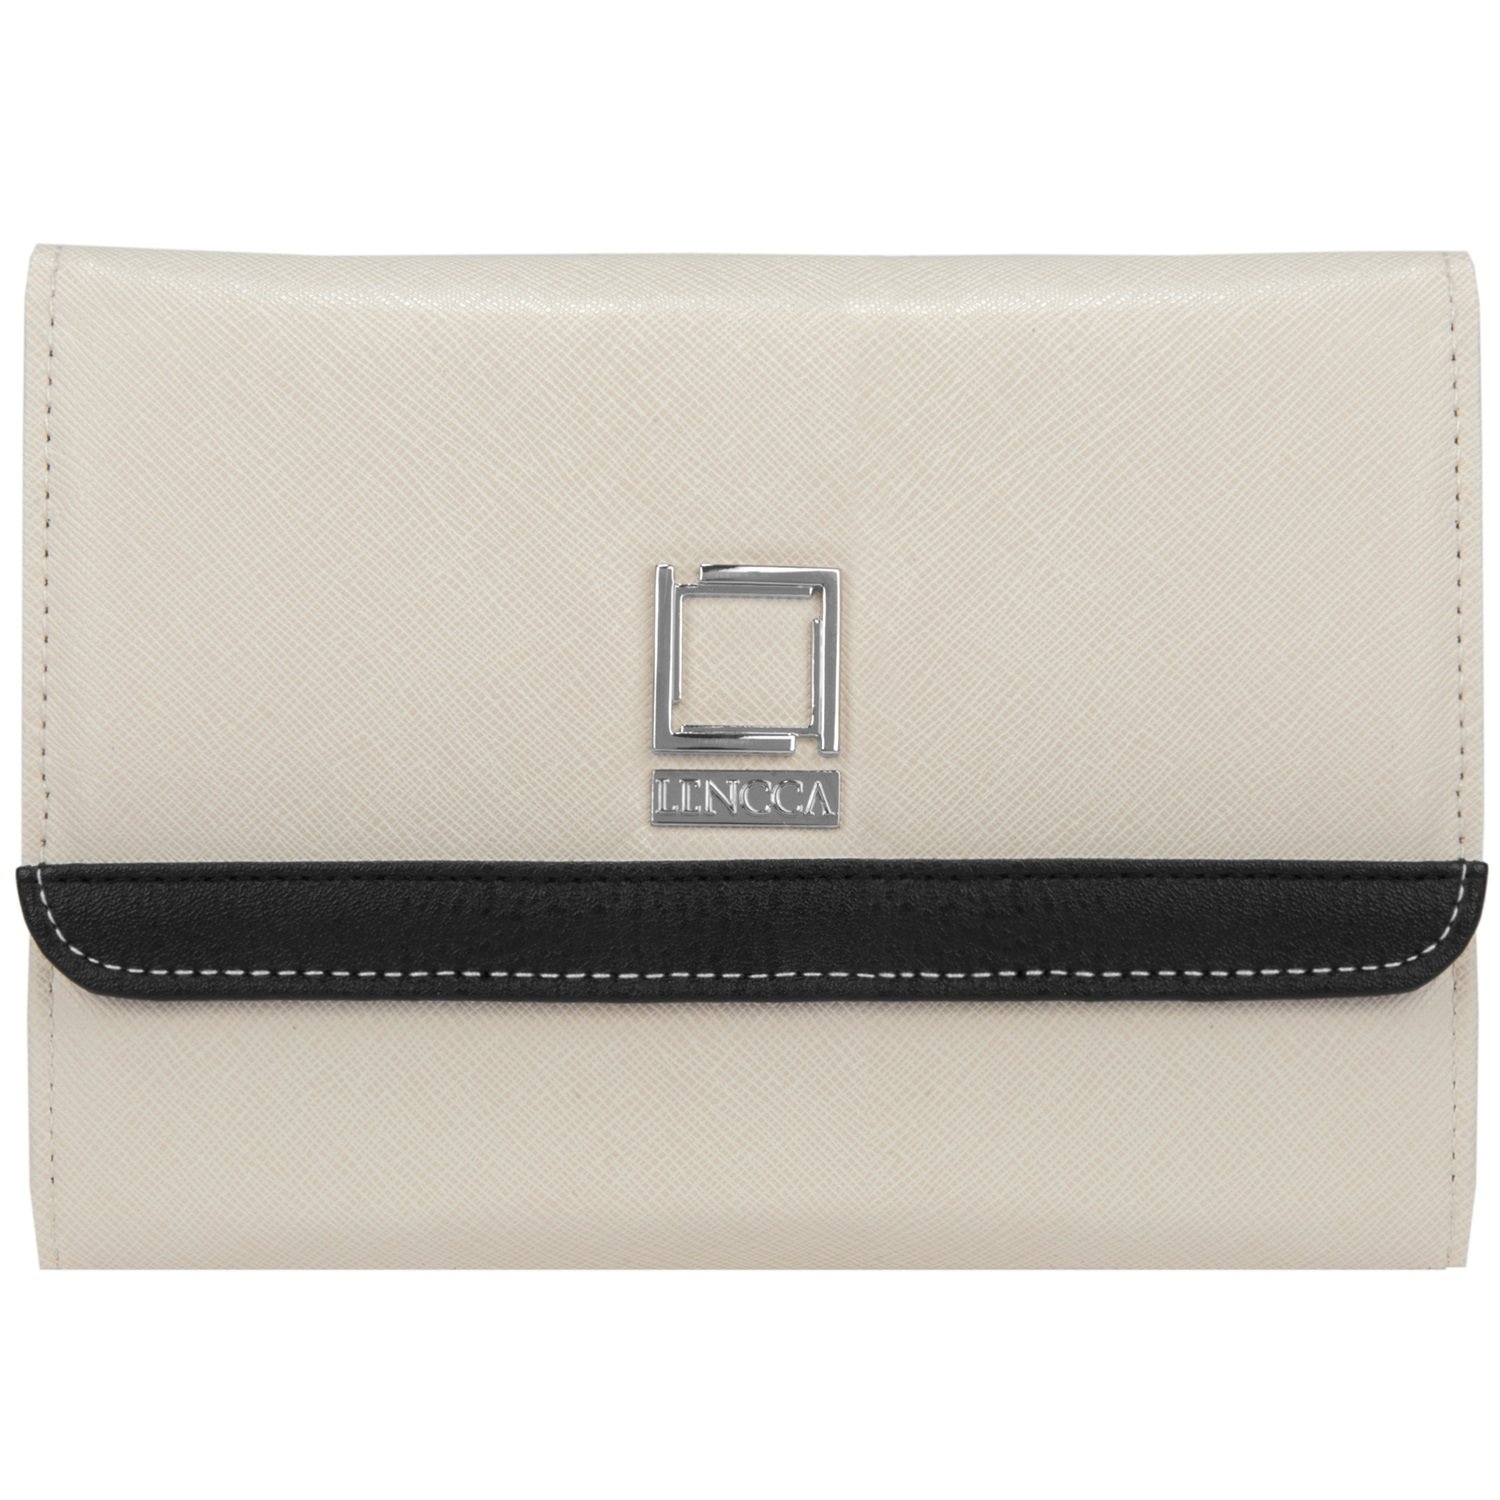 Women's Designer Ivory Clutch for Samsung Phones by Lencca